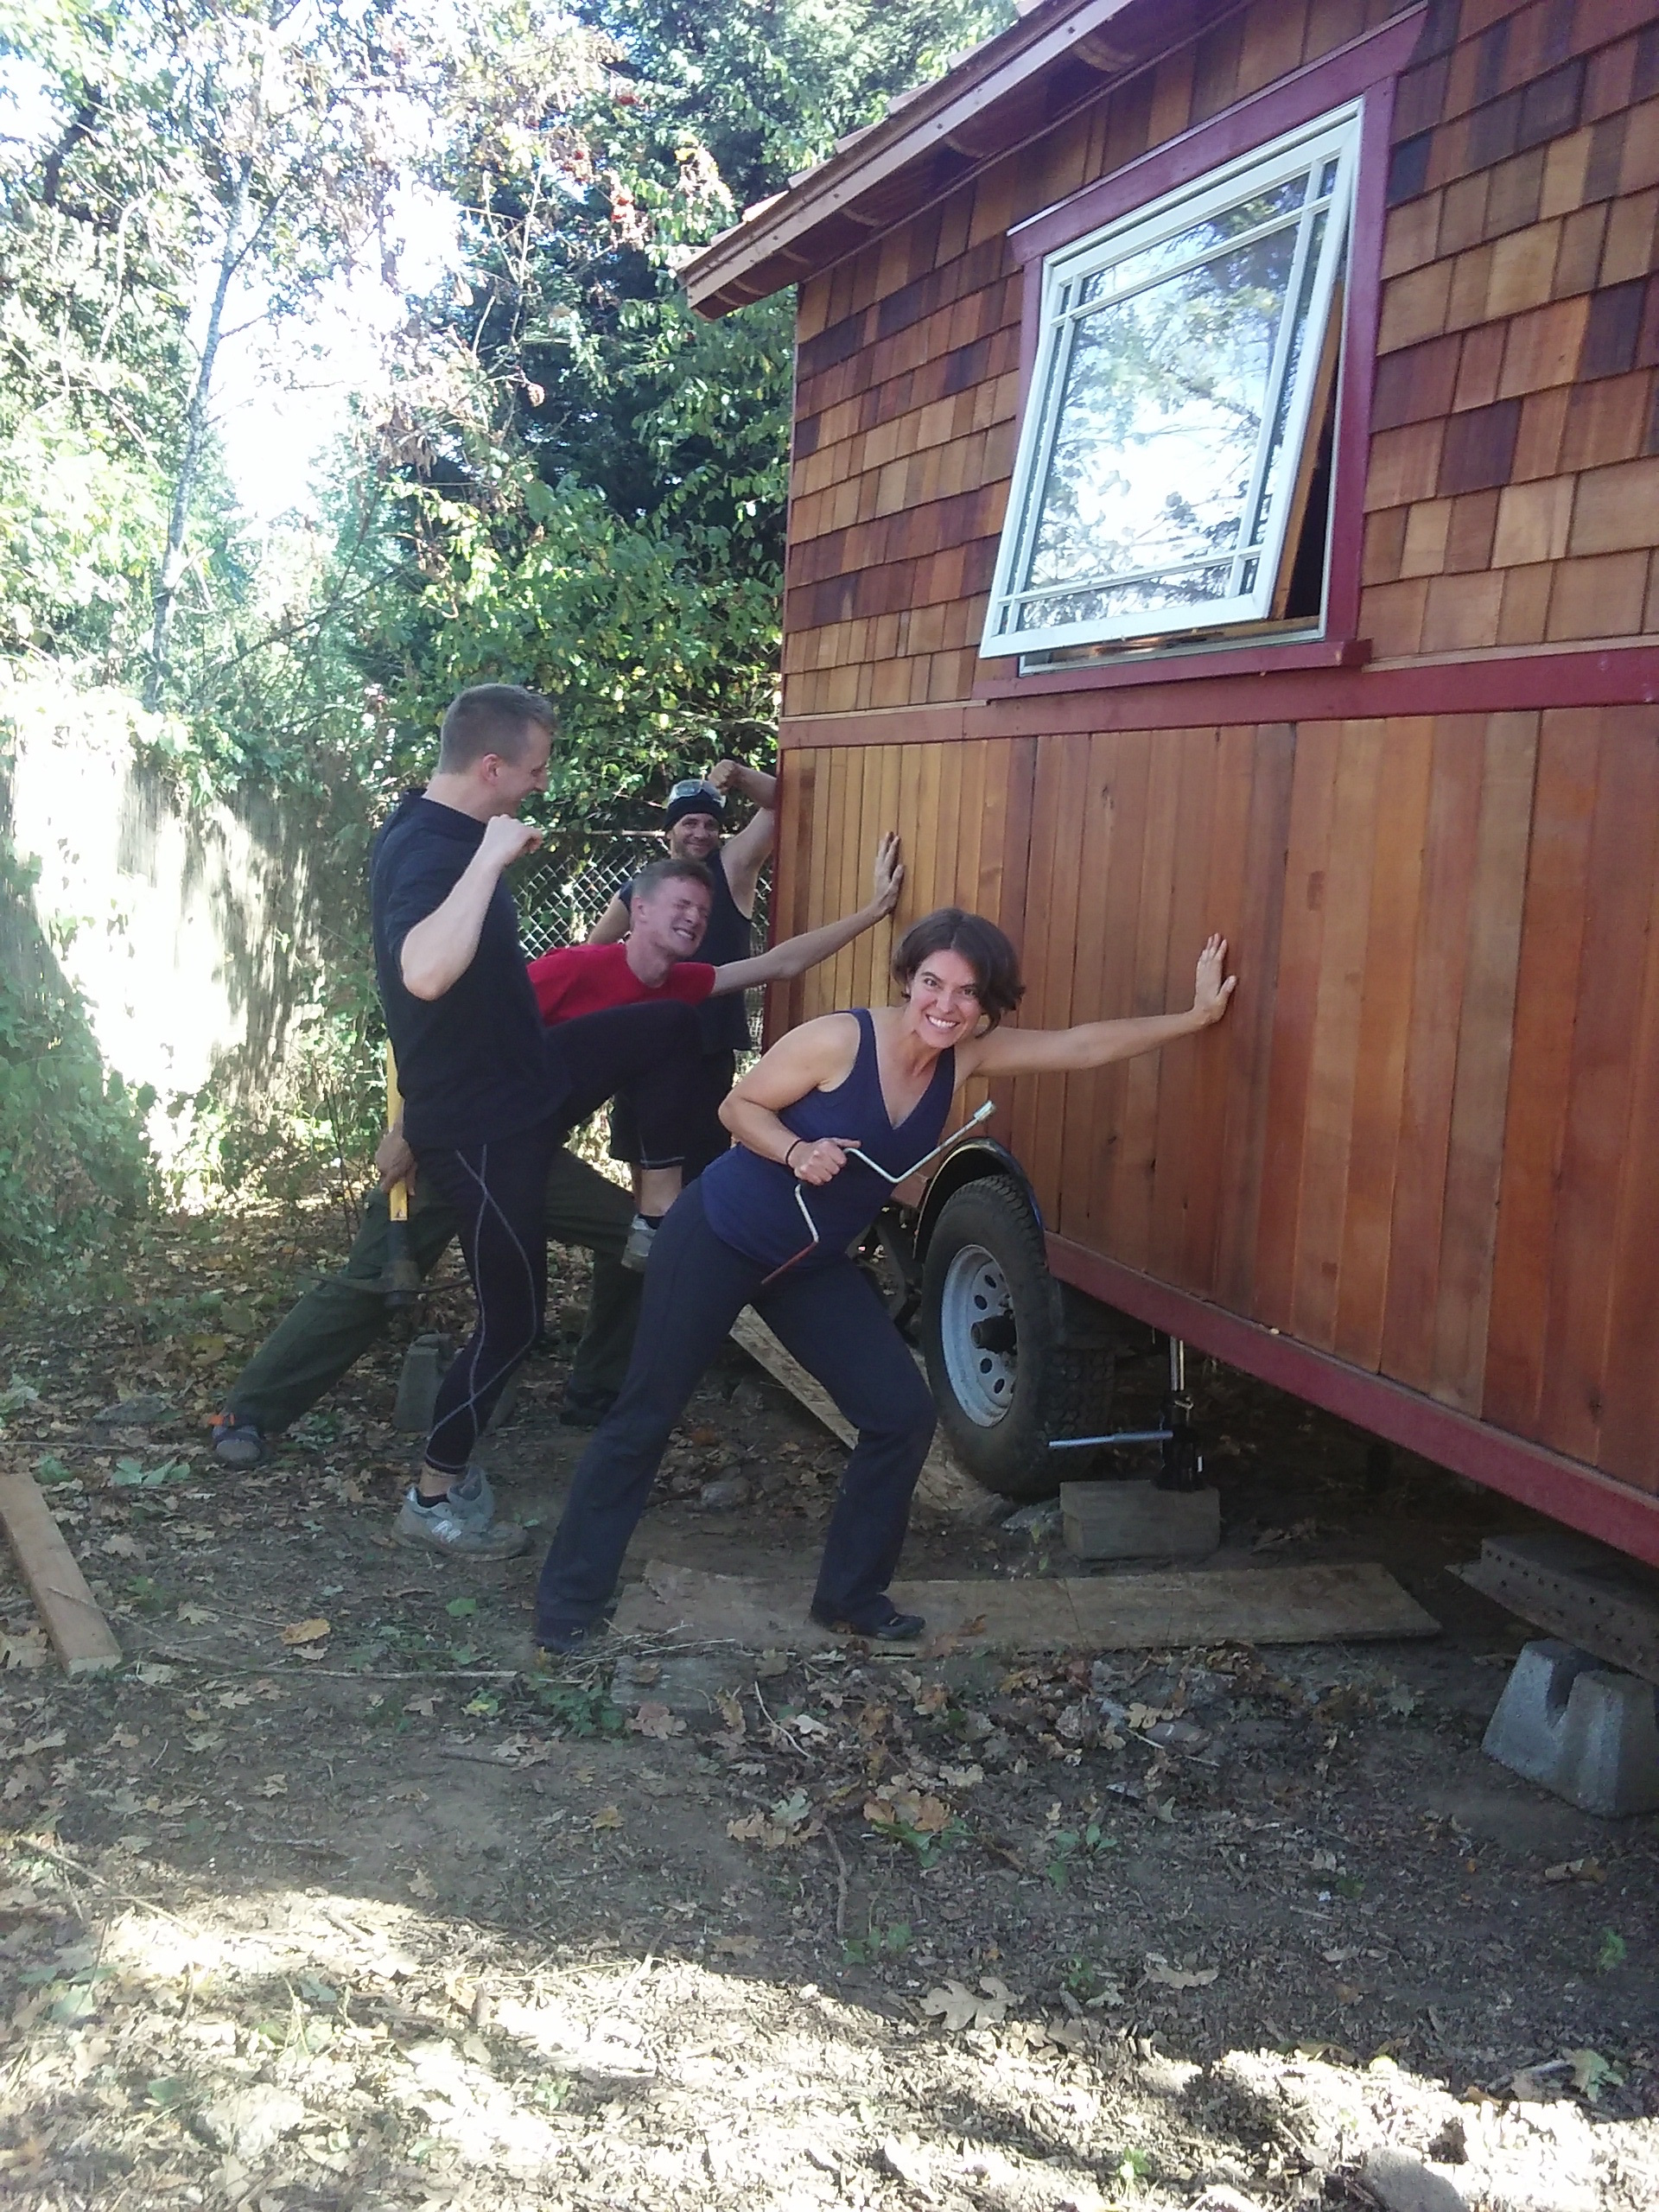 moving tiny houses sometimes requires superhero strength!